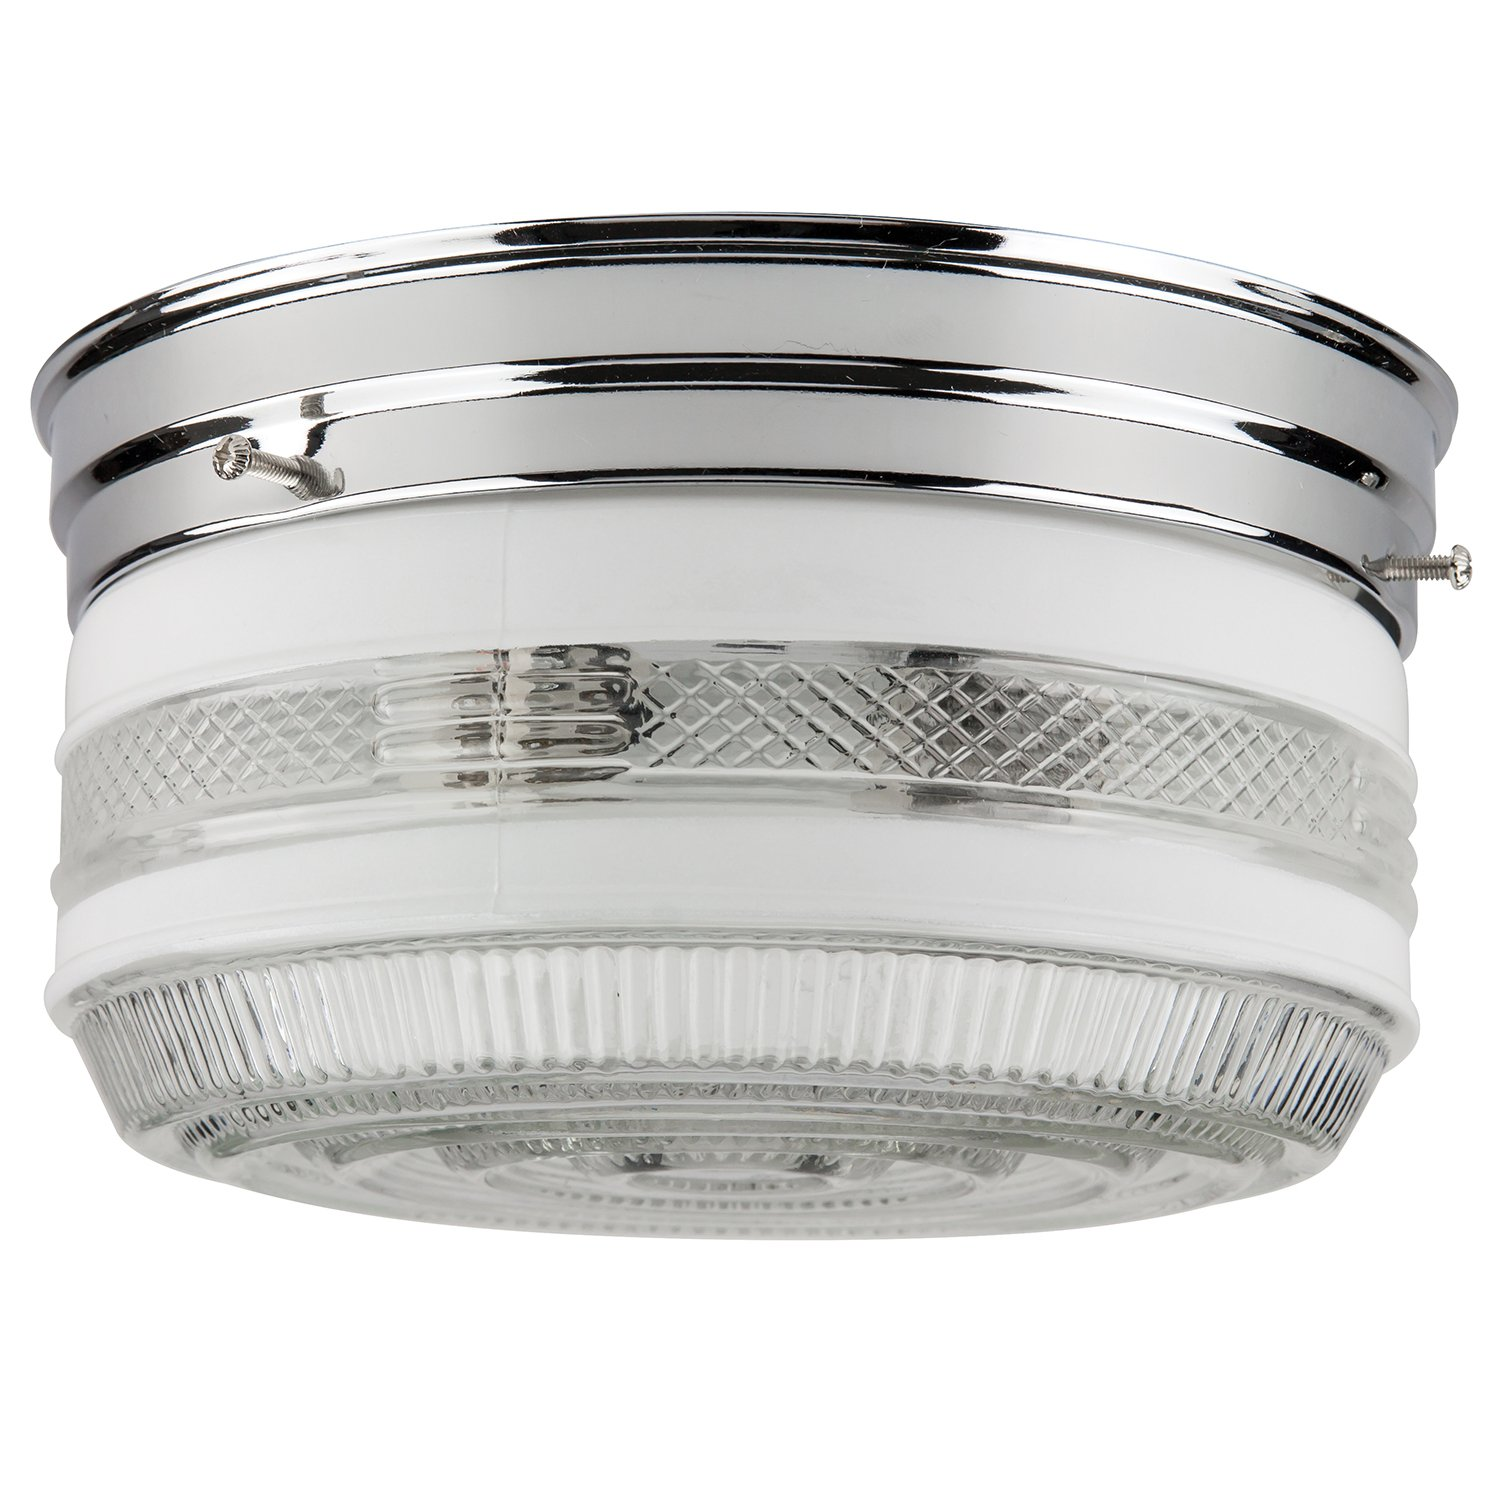 Sunlite kit10/ch 10 inch kitchen ceiling fixture, chrome finish ...